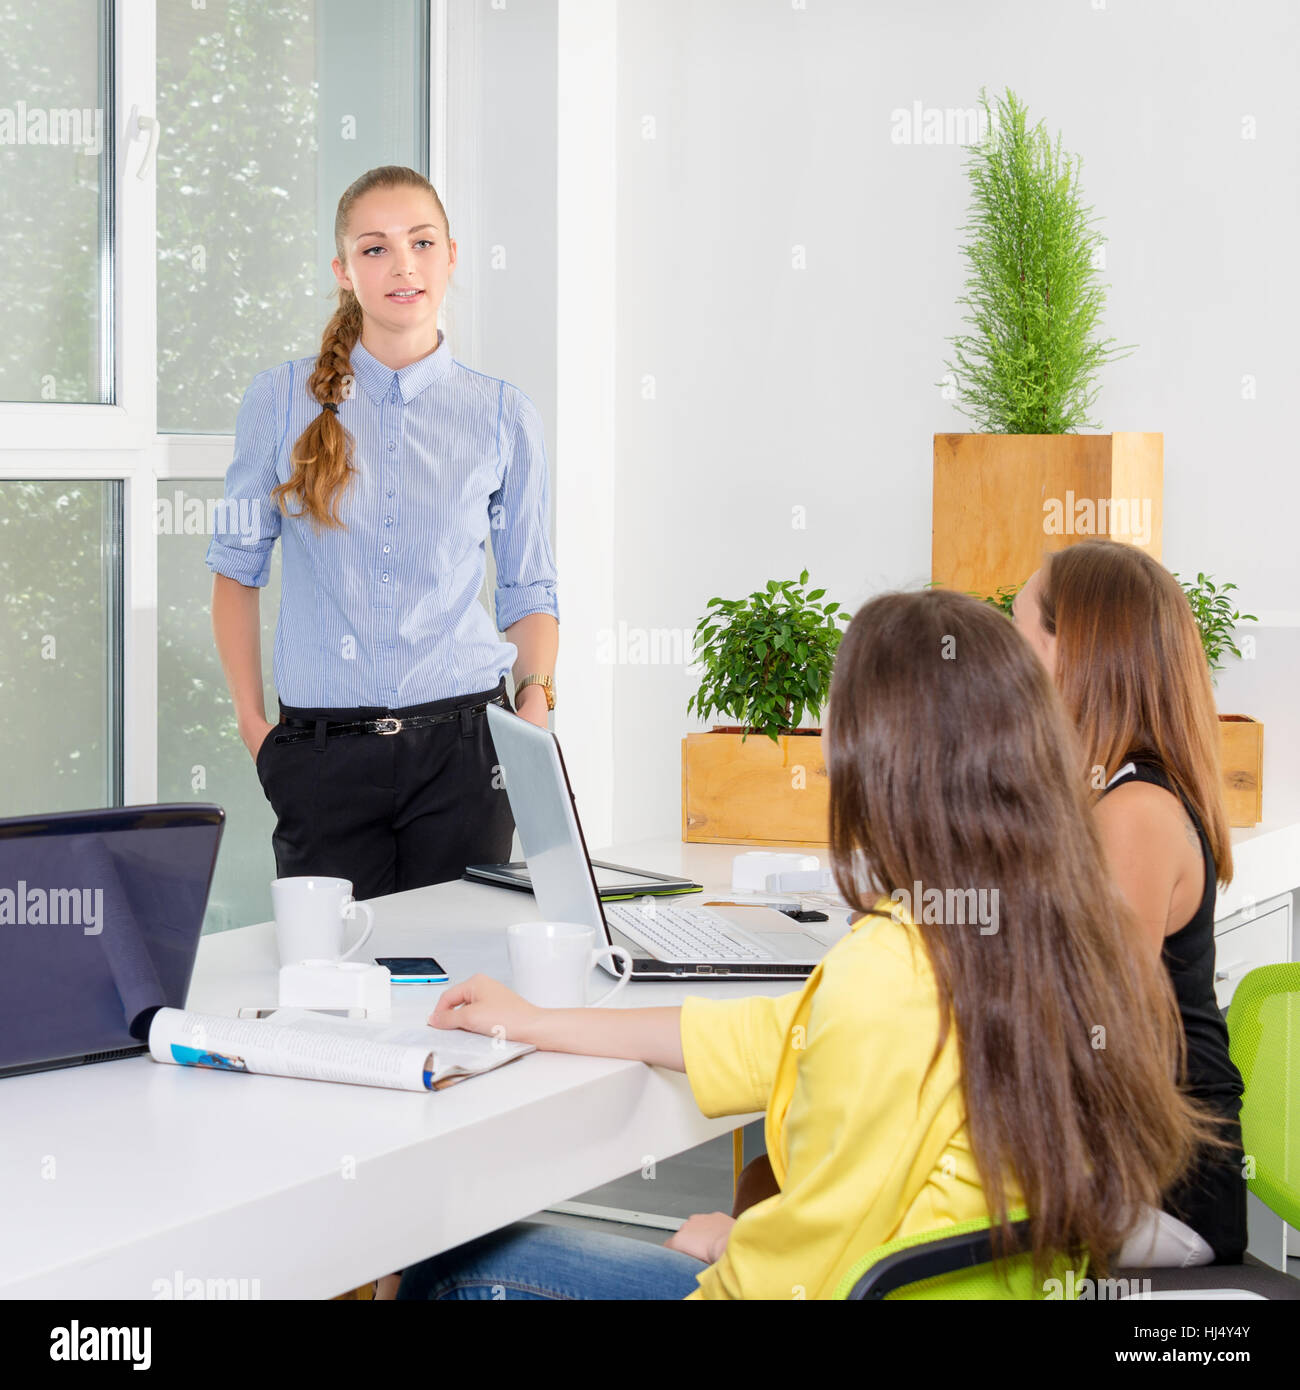 Pretty young business woman giving a presentation in conference or meeting setting. People and teamwork concept - Stock Image